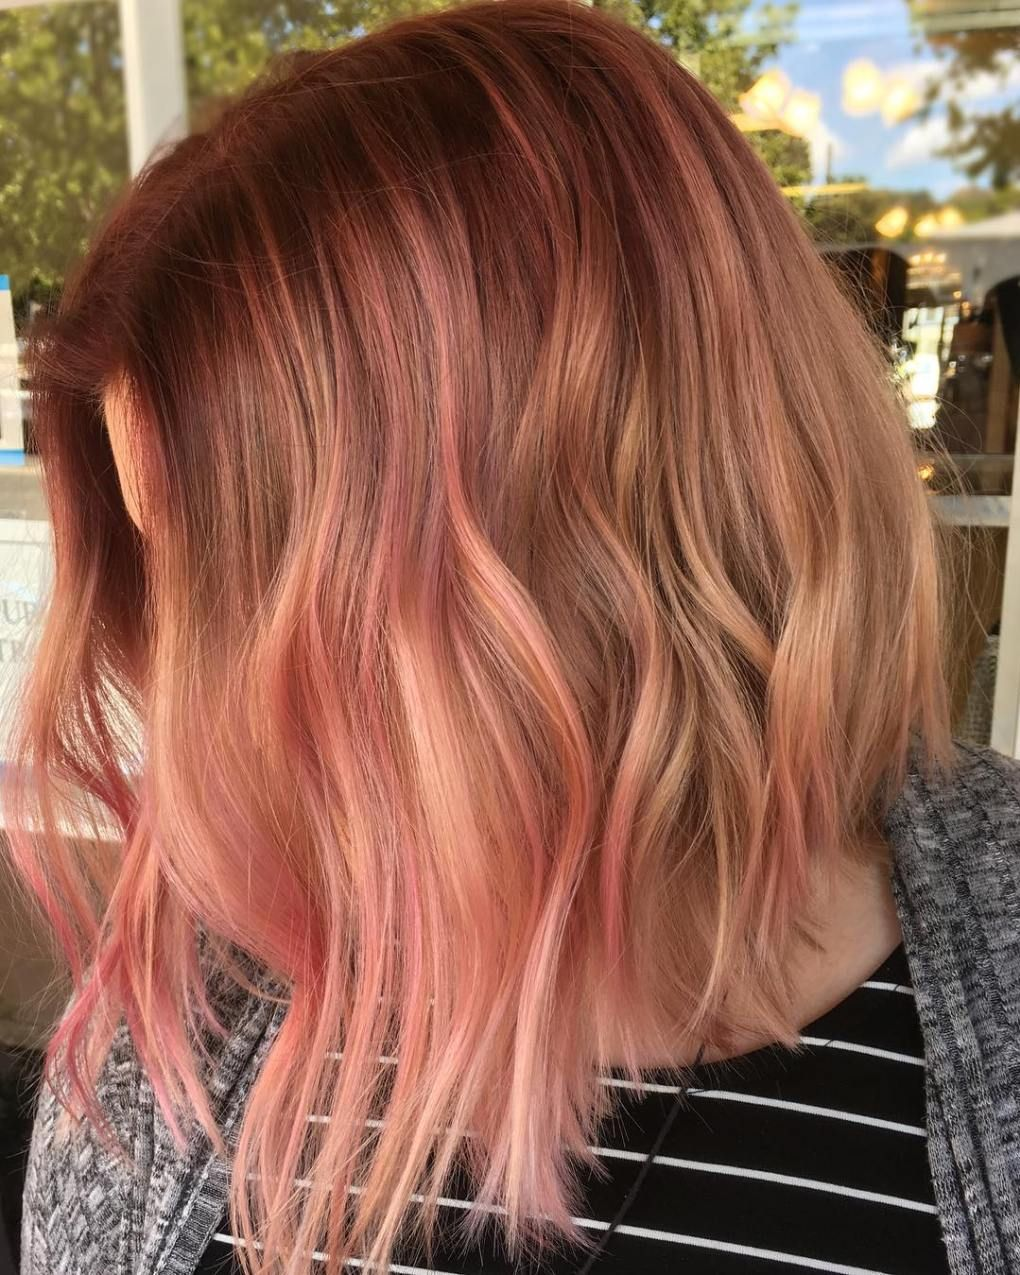 20 Gorgeous Examples Of Rose Gold Balayage Hair Hair Balayage